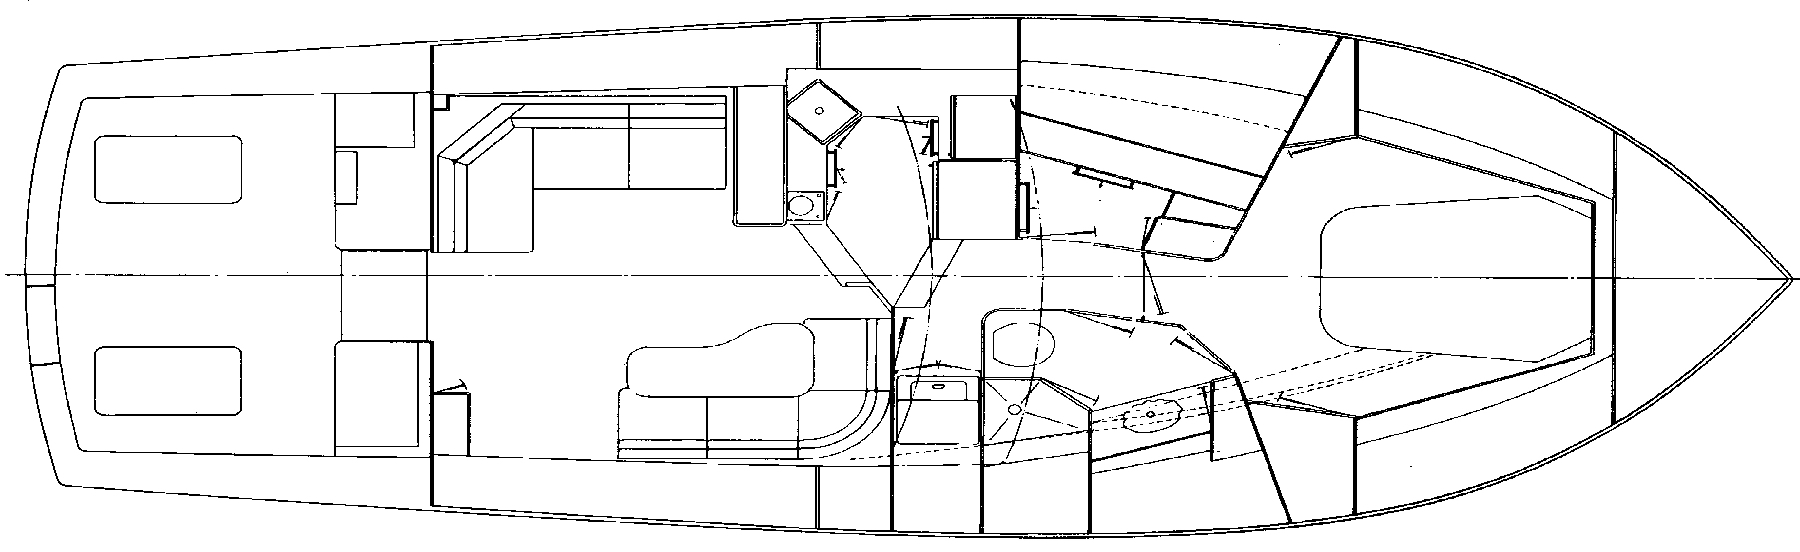 43 Sport Fisherman Floor Plan 1